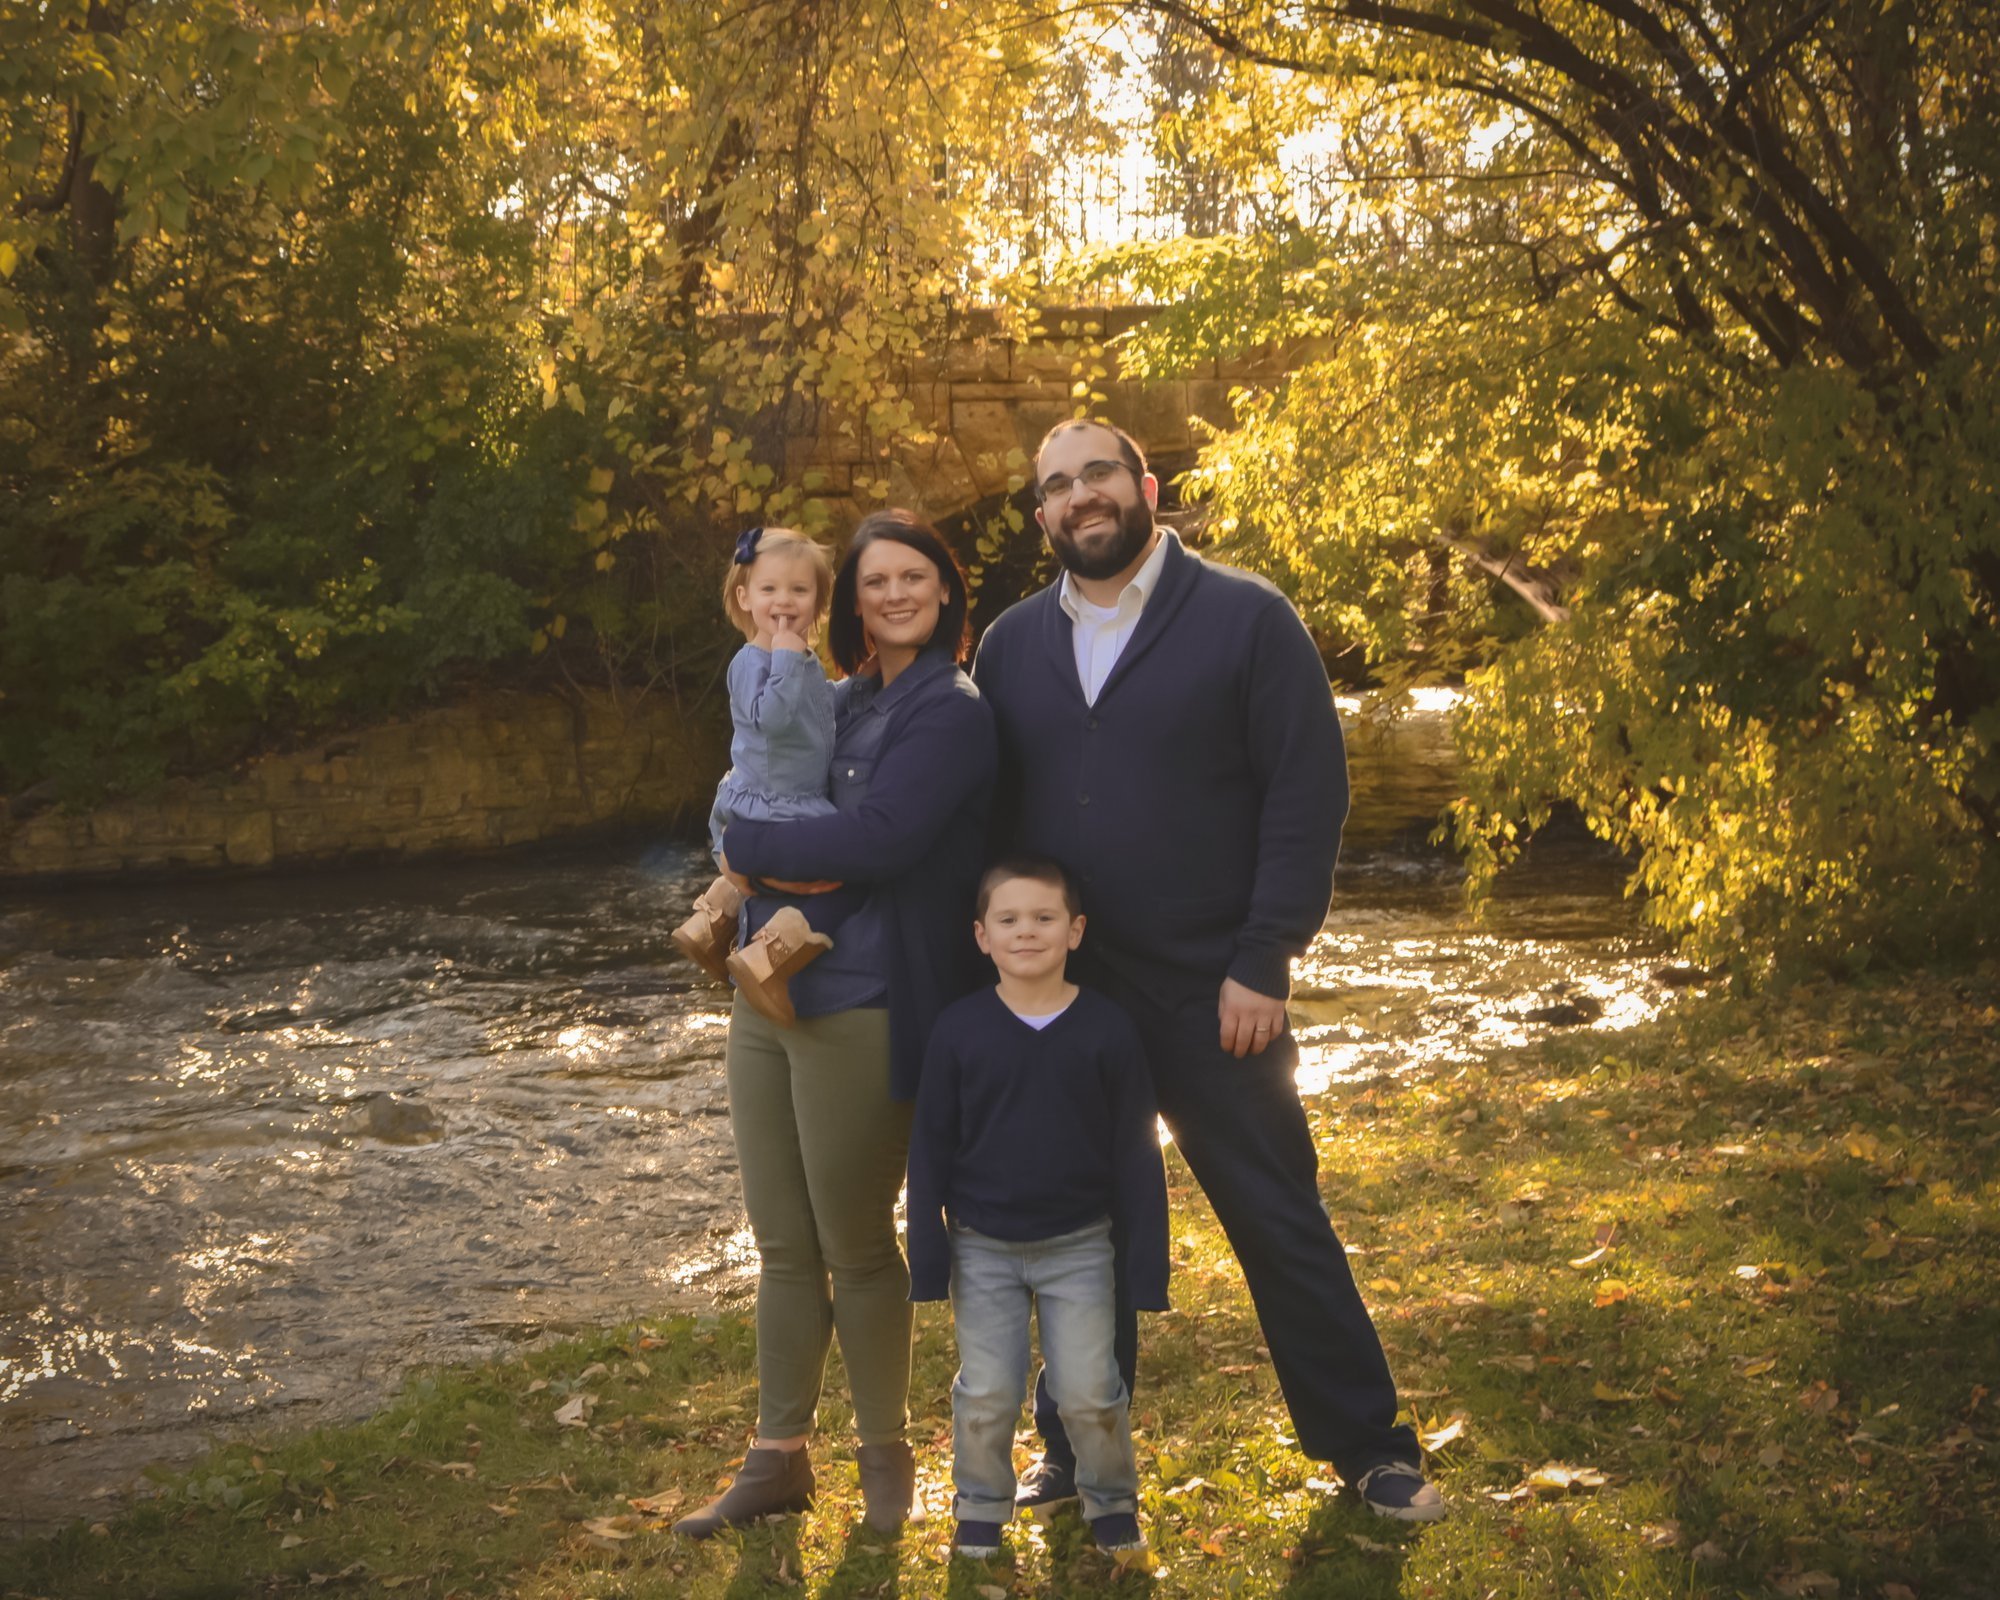 Top Family Photos Location In Saint Paul, MN